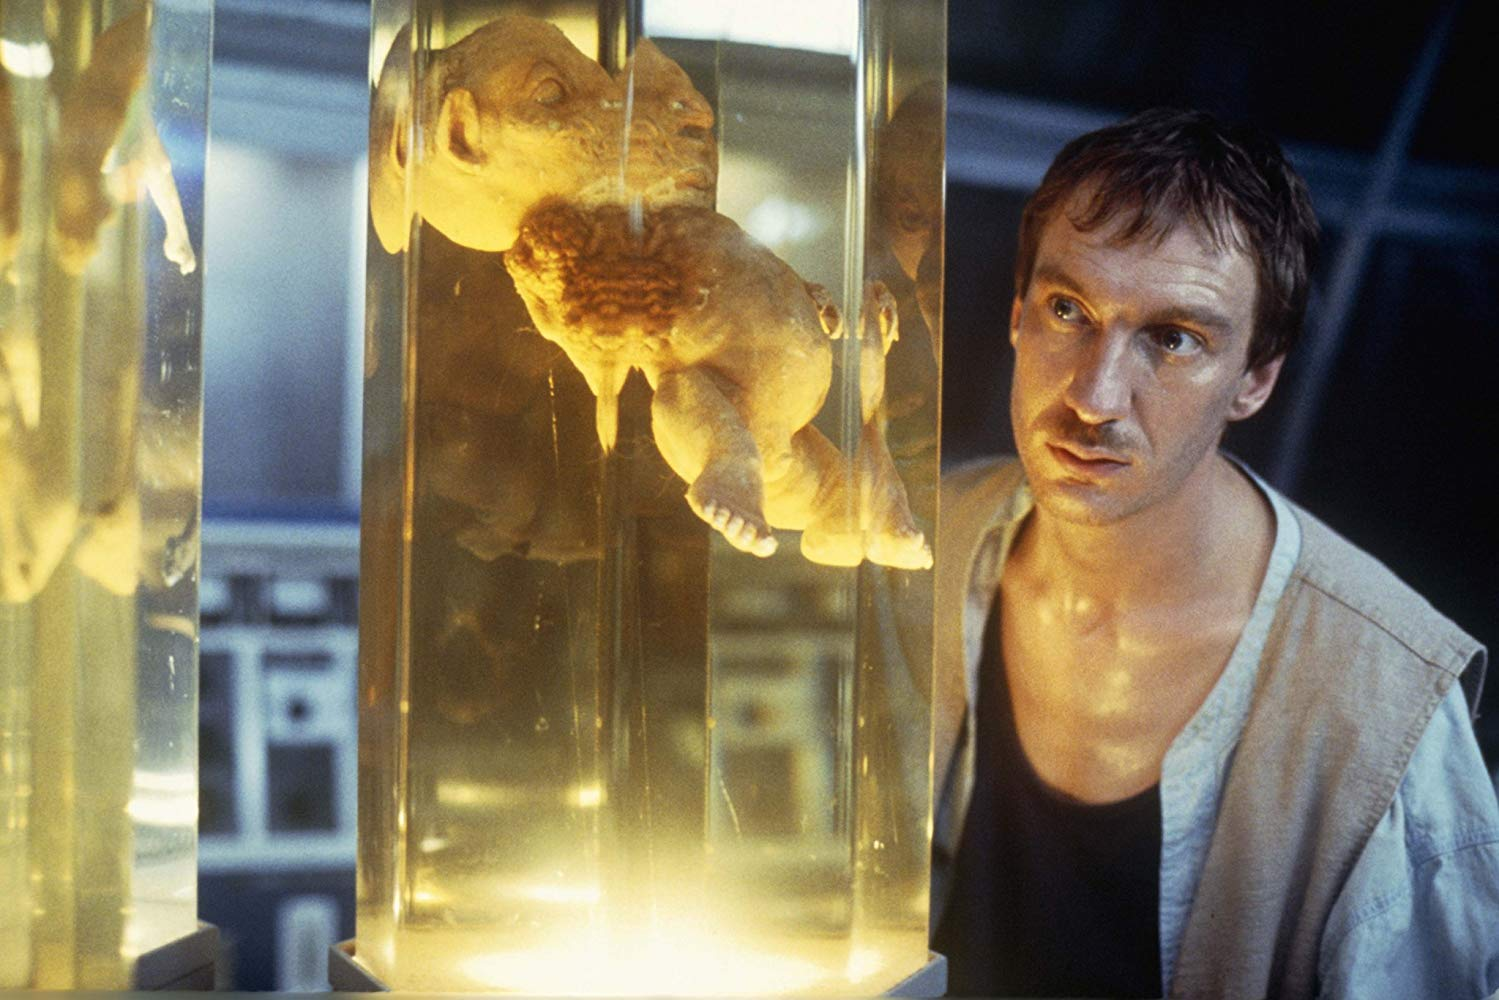 Castaway Edward Douglas (David Thewlis) views the experiments in the lab in The Island of Dr Moreau (1996)